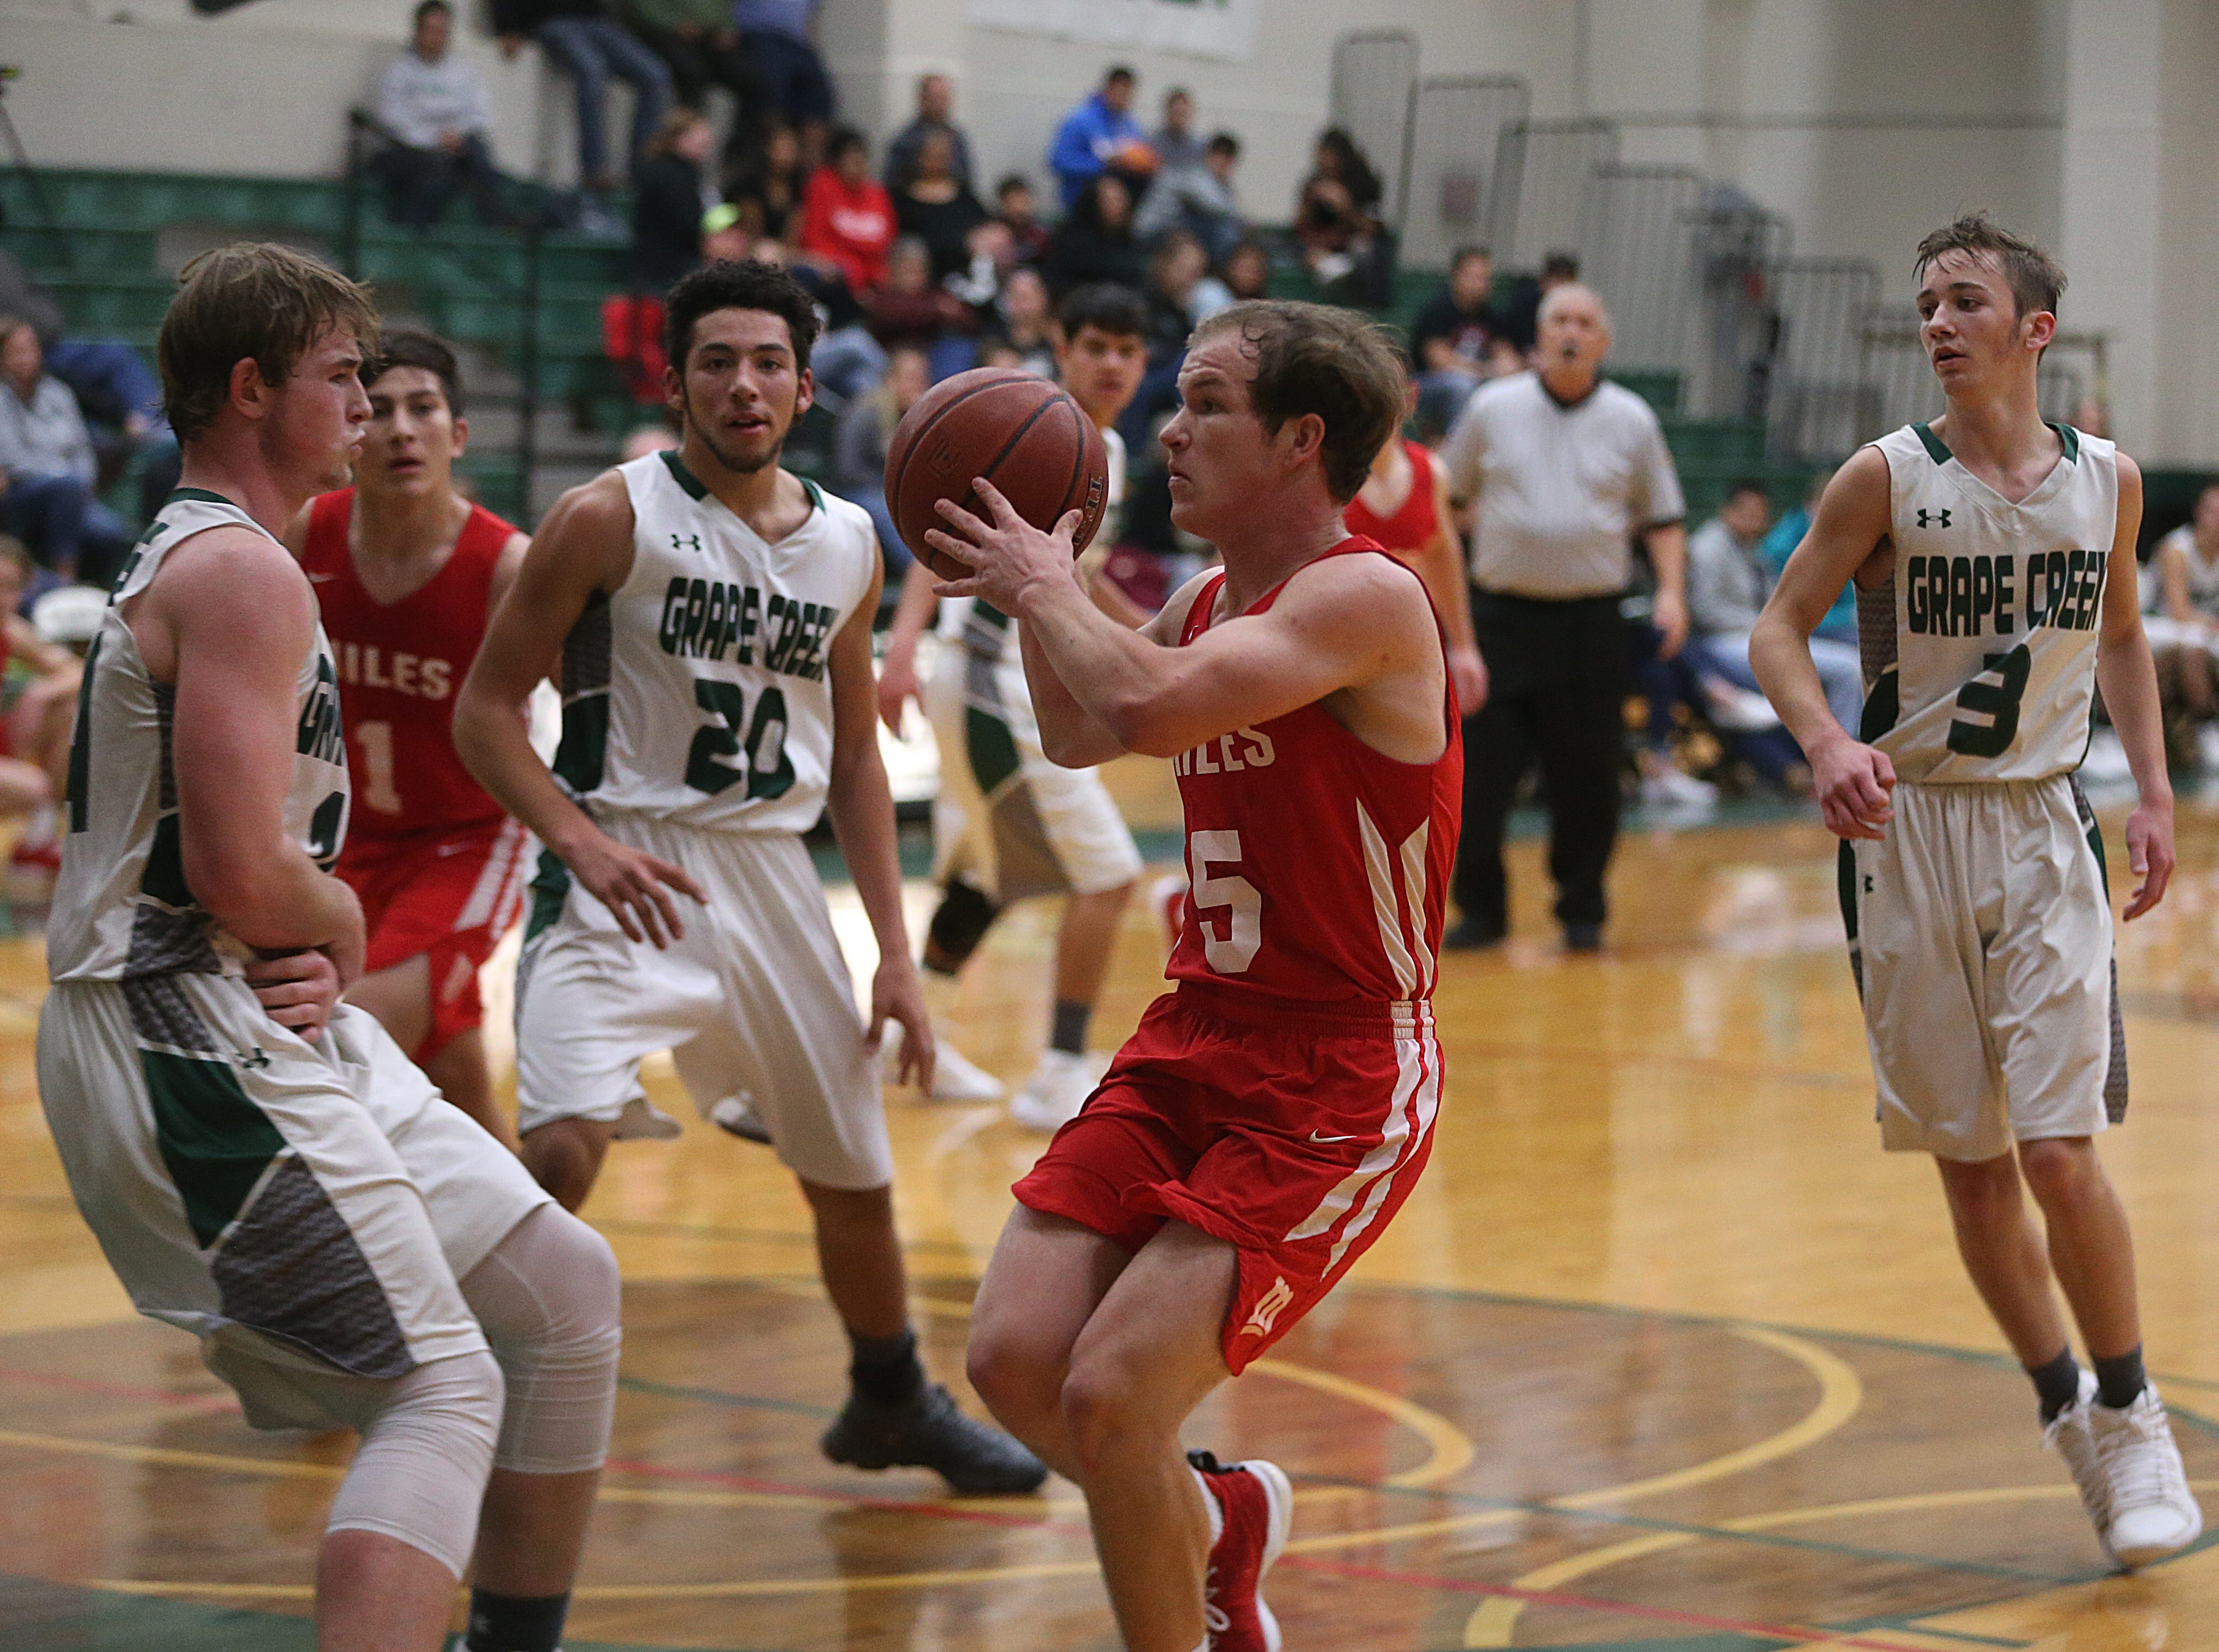 Miles' Mason Bryan (#5) positions himself to shoot the ball Friday, Dec. 14, 2018 during their game against Grape Creek. Miles won 50 to 38.